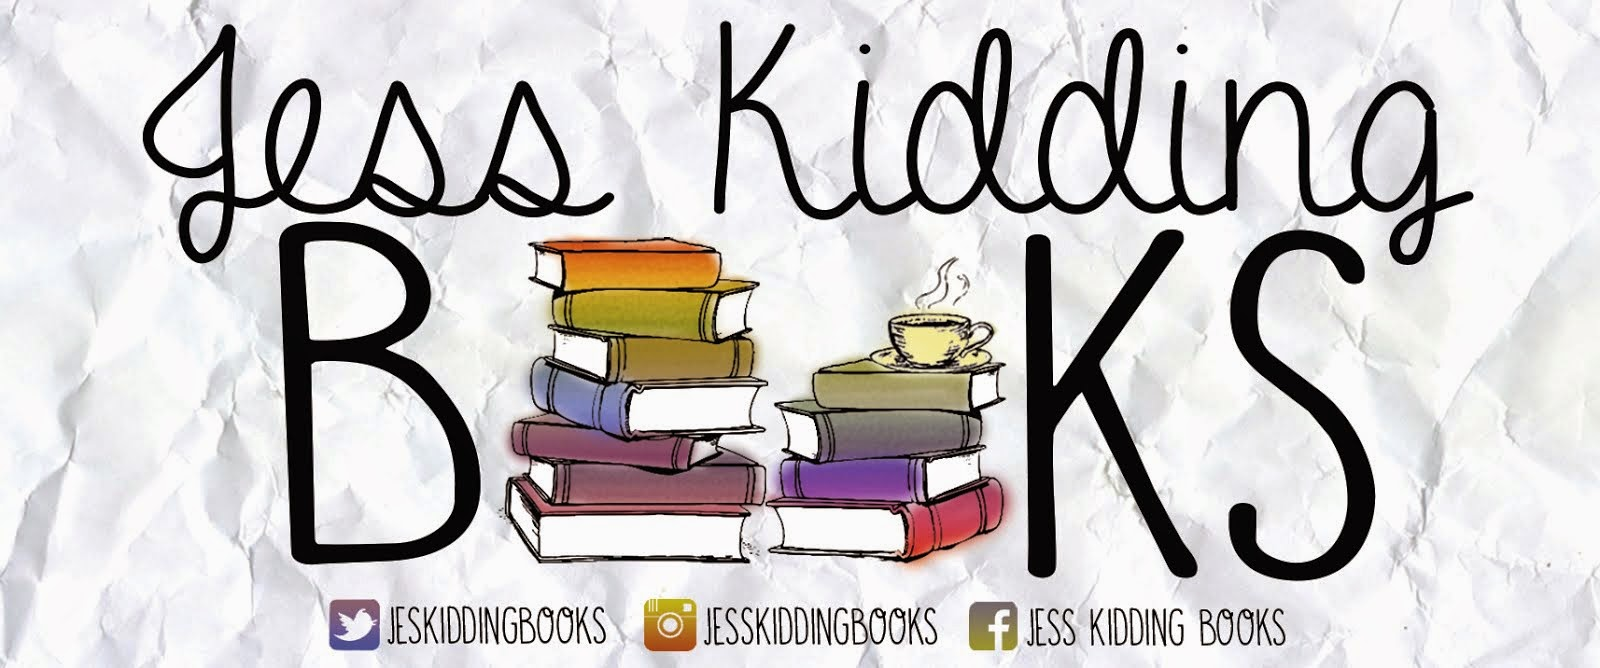 1600x668 Jess Kidding Books Book Review Wicked By Jennifer L. Armentrout.